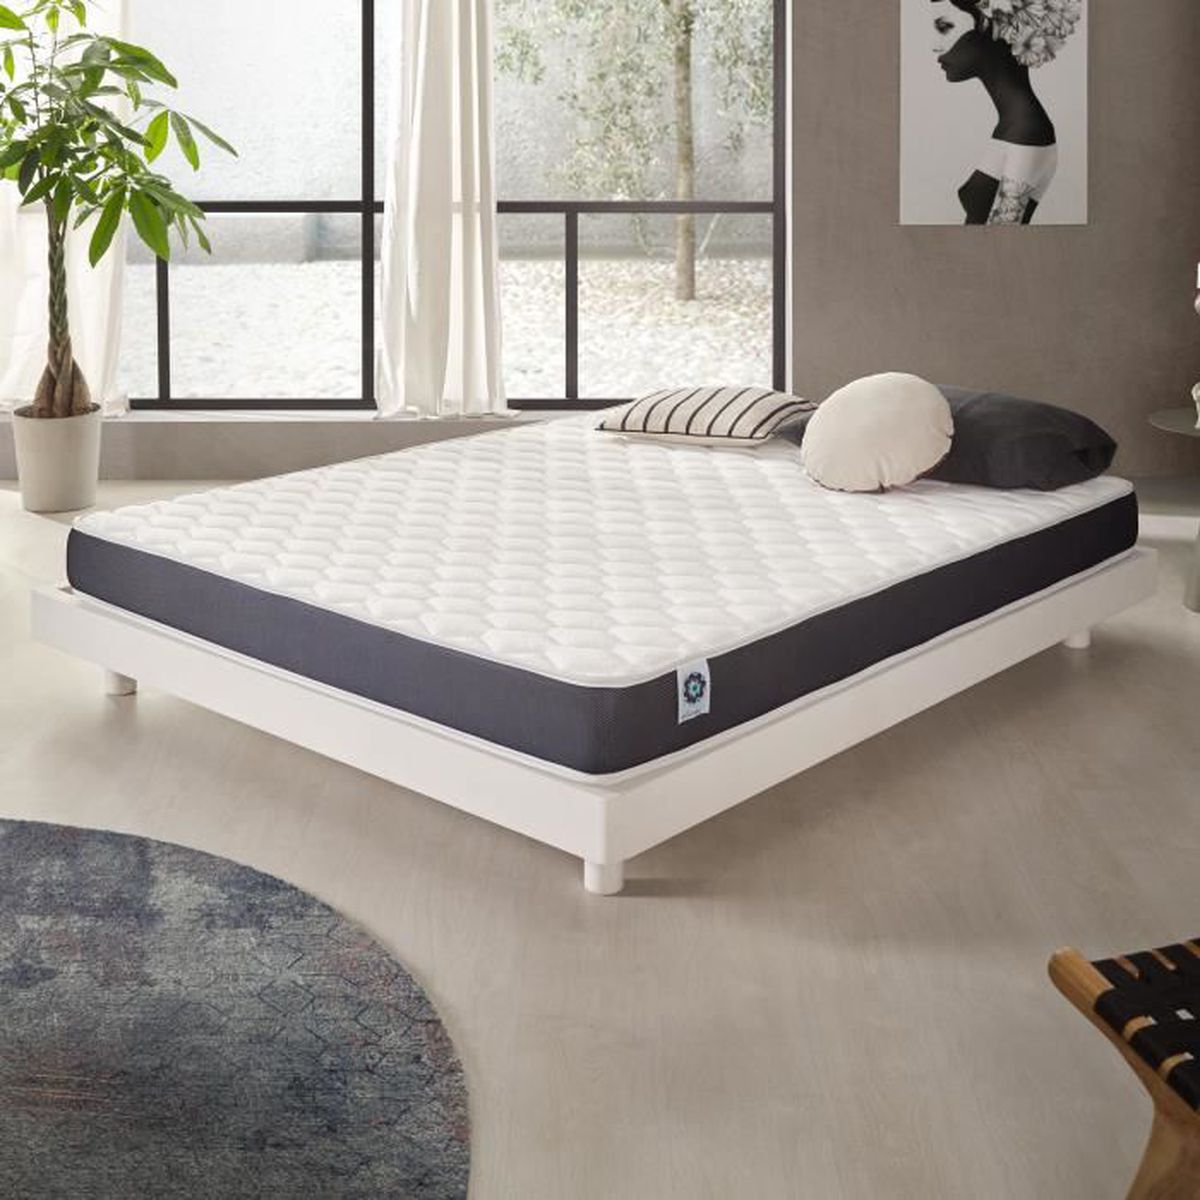 matelas ergolatex 90x200 cm mousse blue latex lit adulte enfant achat vente matelas cdiscount. Black Bedroom Furniture Sets. Home Design Ideas